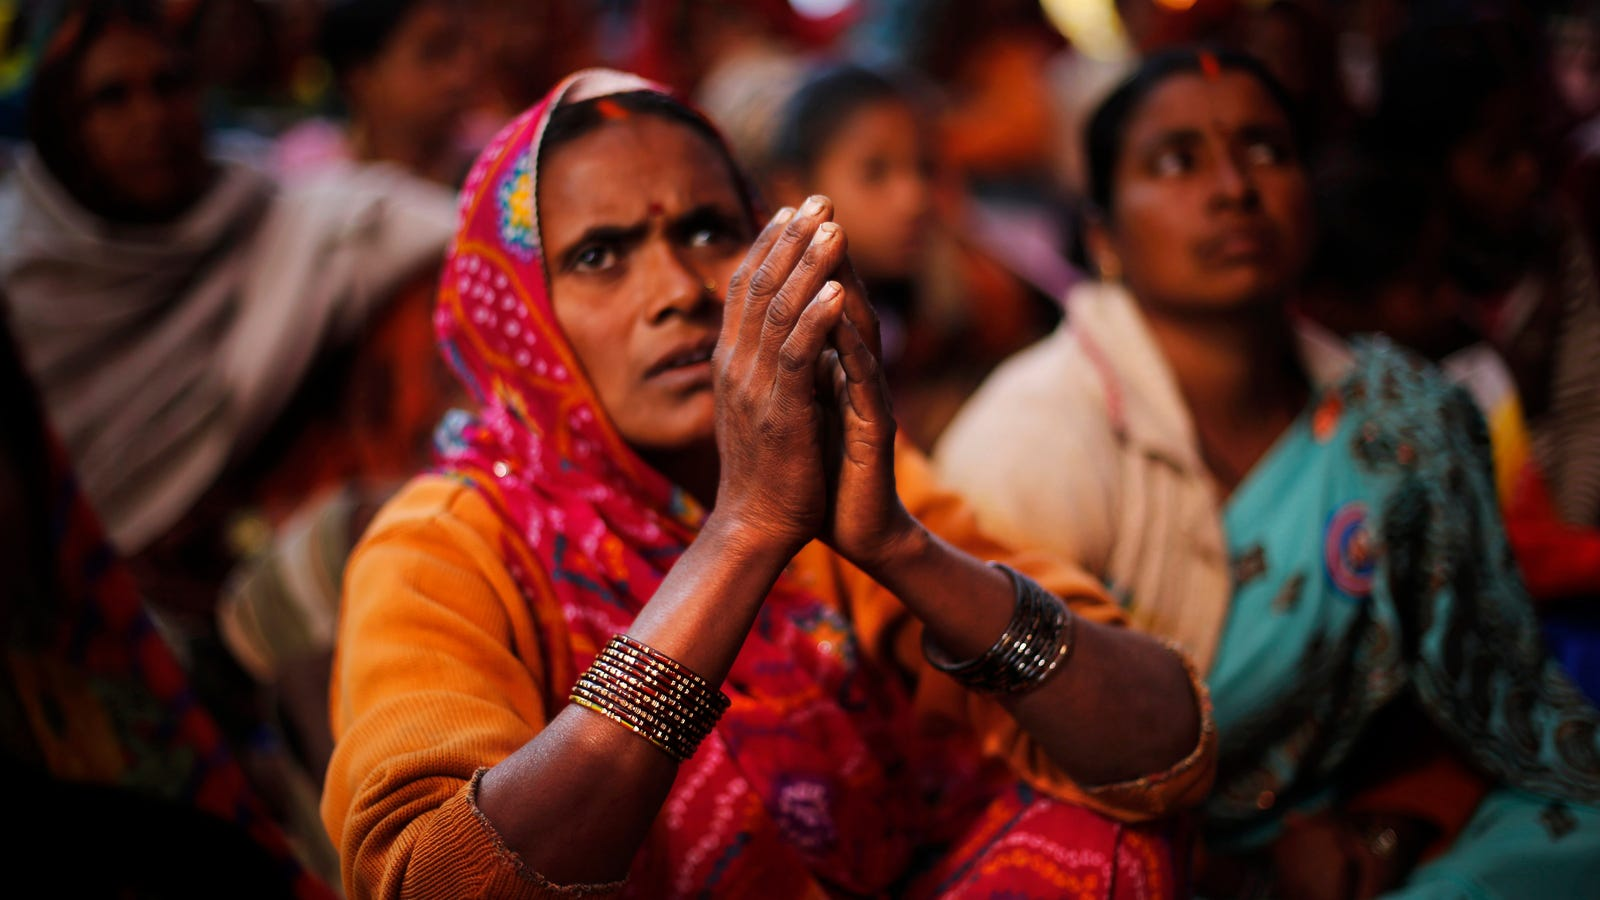 A Shared History of Struggle Should Unite India's Dalits and African Americans in the Fight for Equality